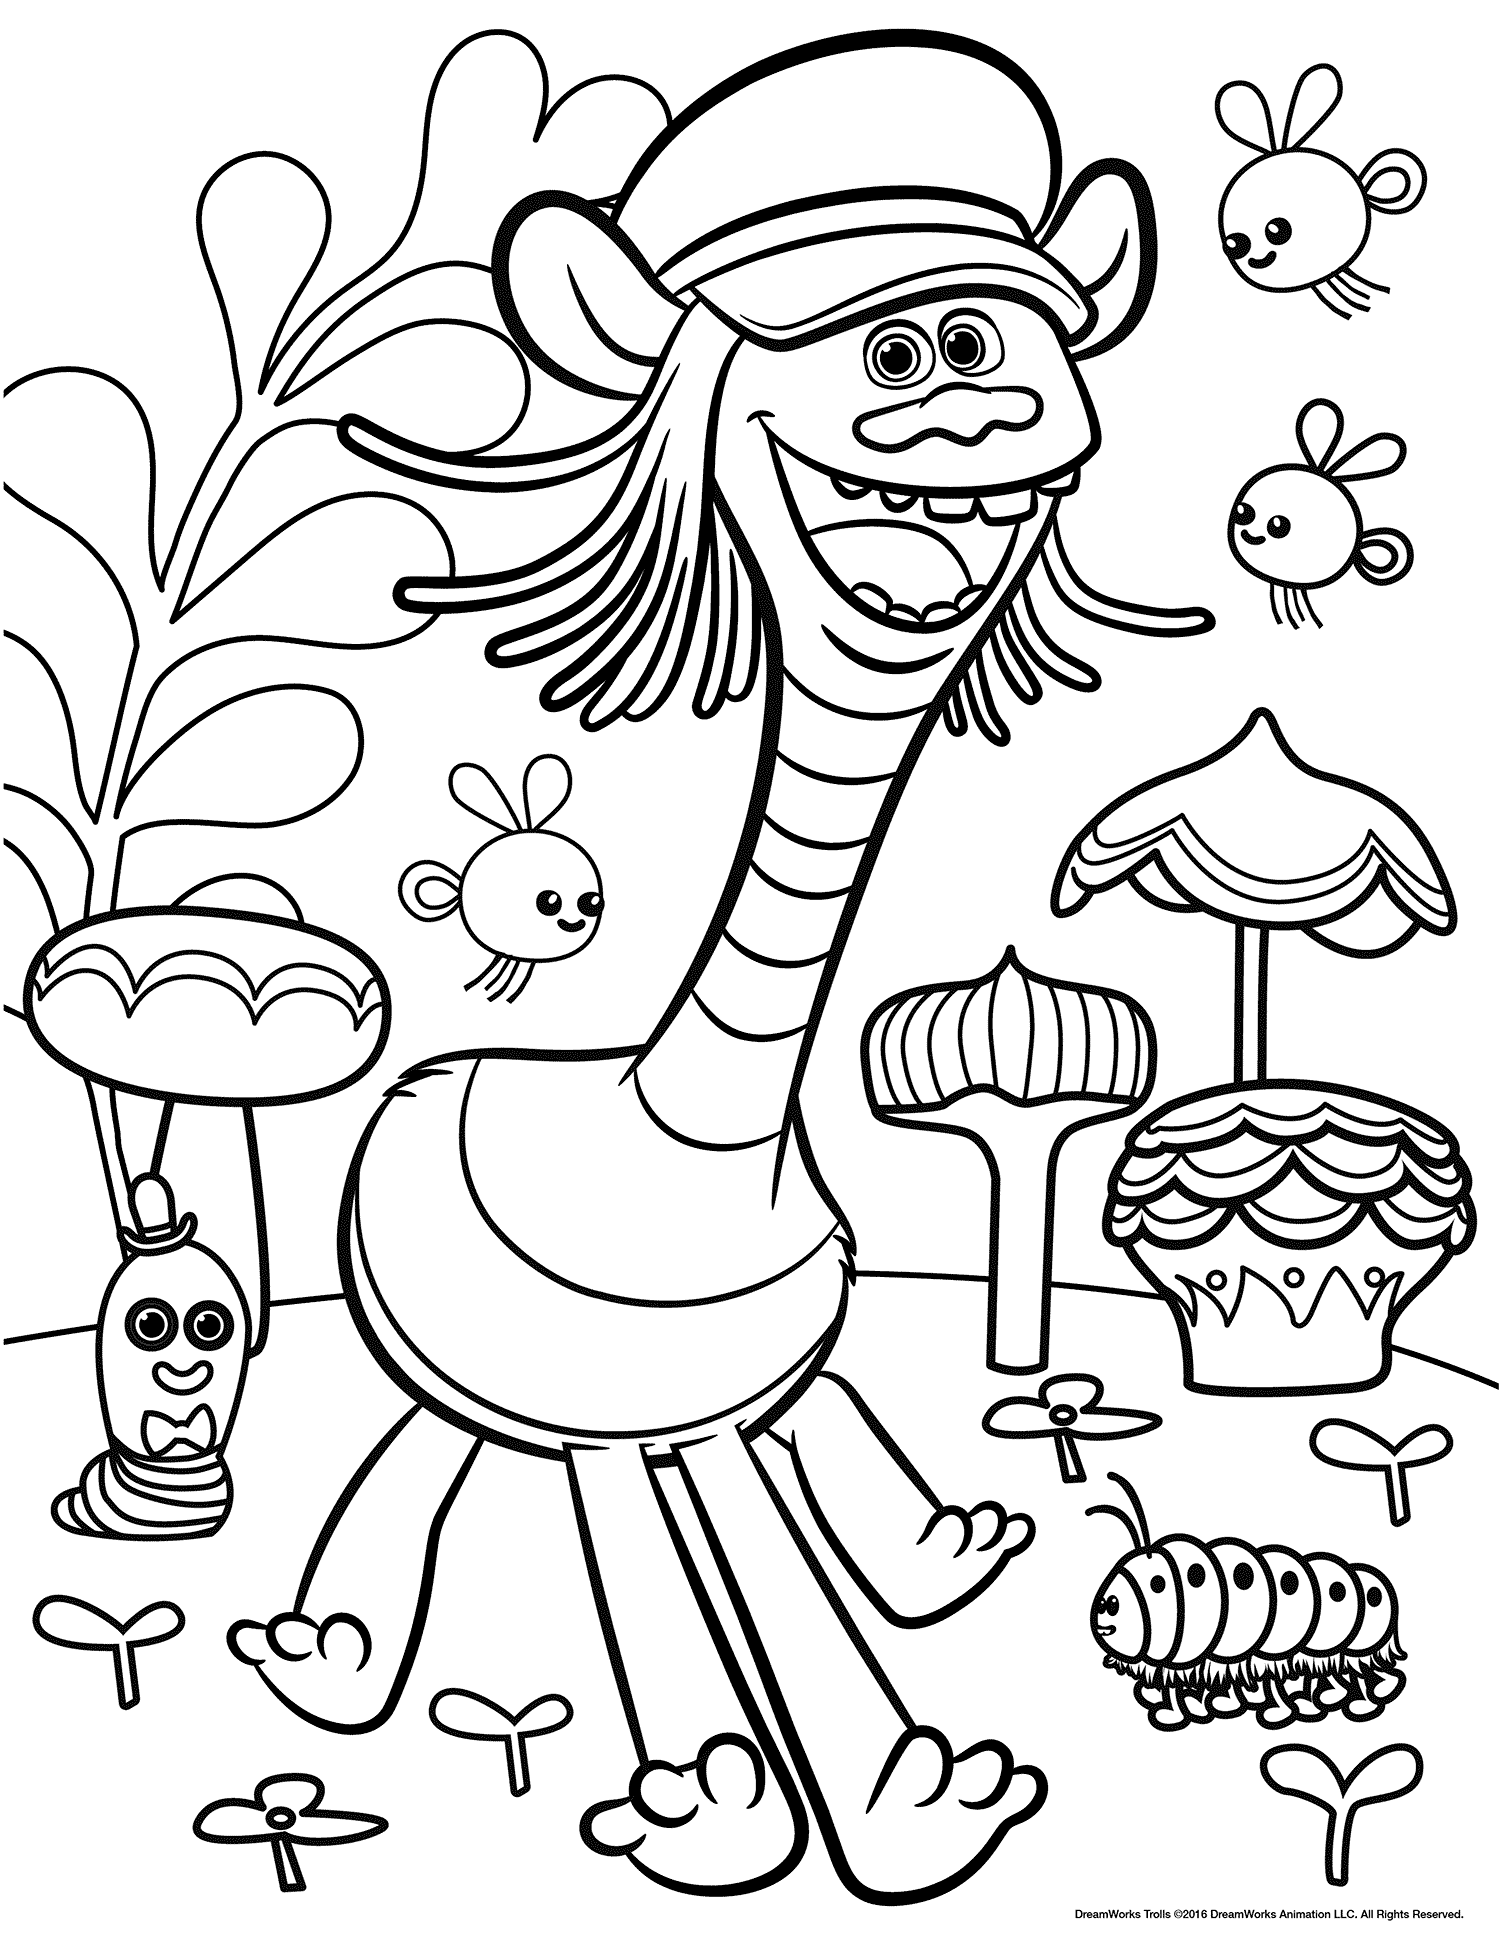 Dreamworks Trolls Coloring Pages - GetColoringPages.com | Adult ...